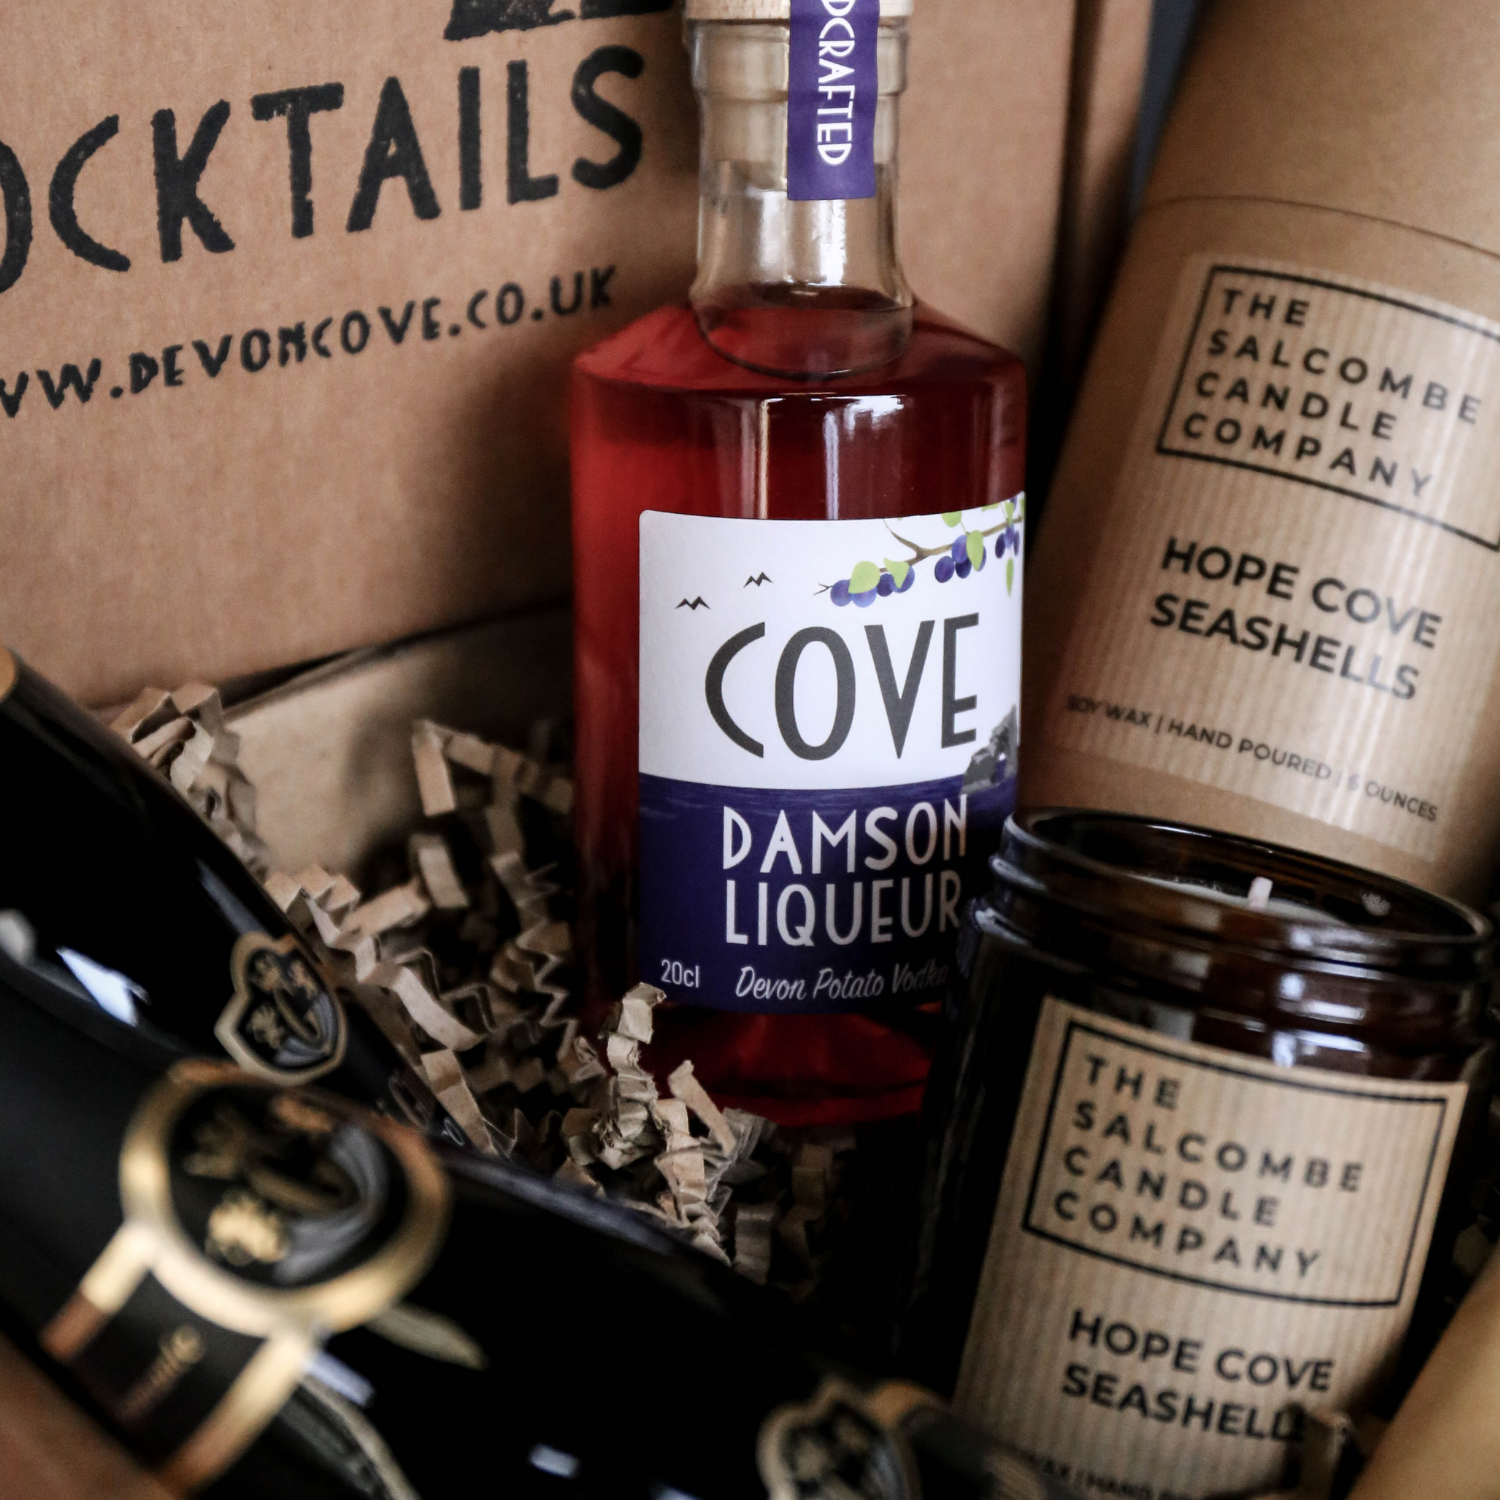 Hope Cove Candle and Devon Cove Royale Cocktail Kit